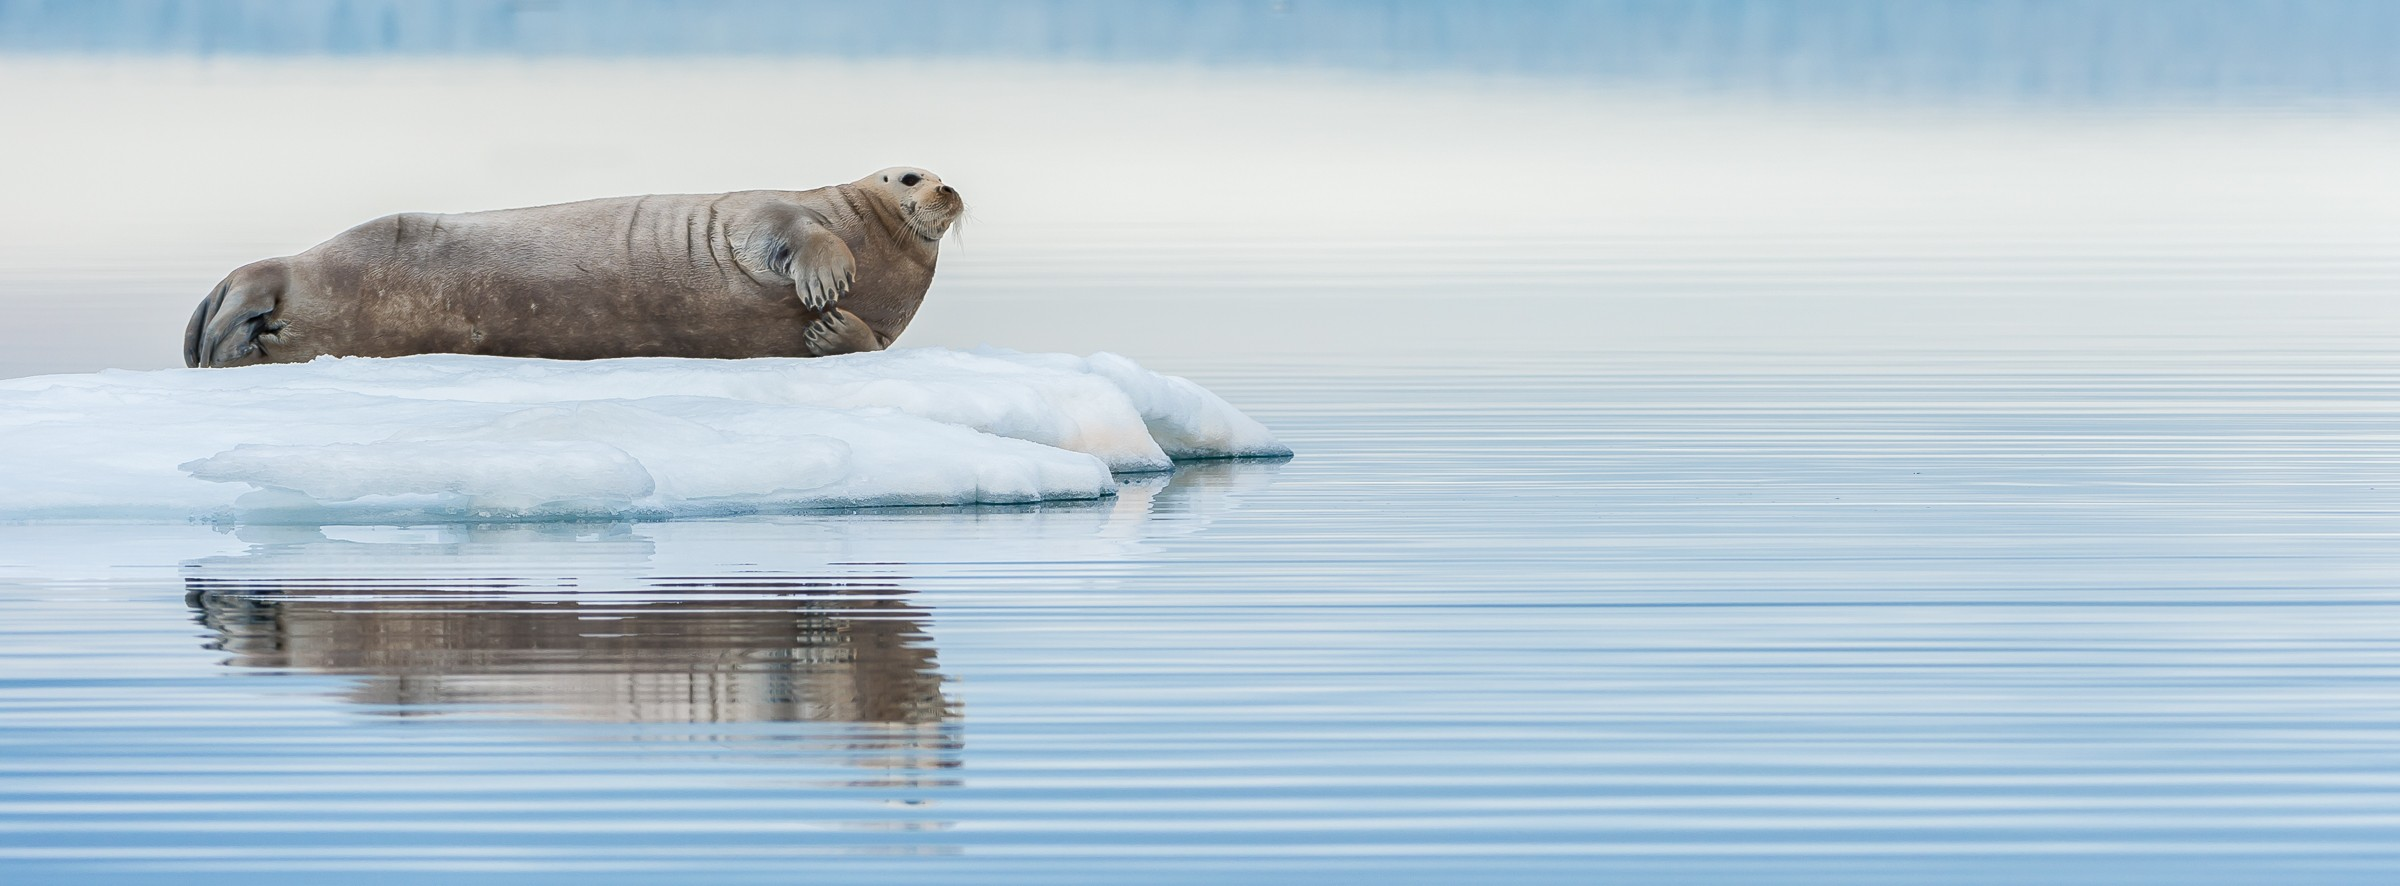 wildlife artic 8166